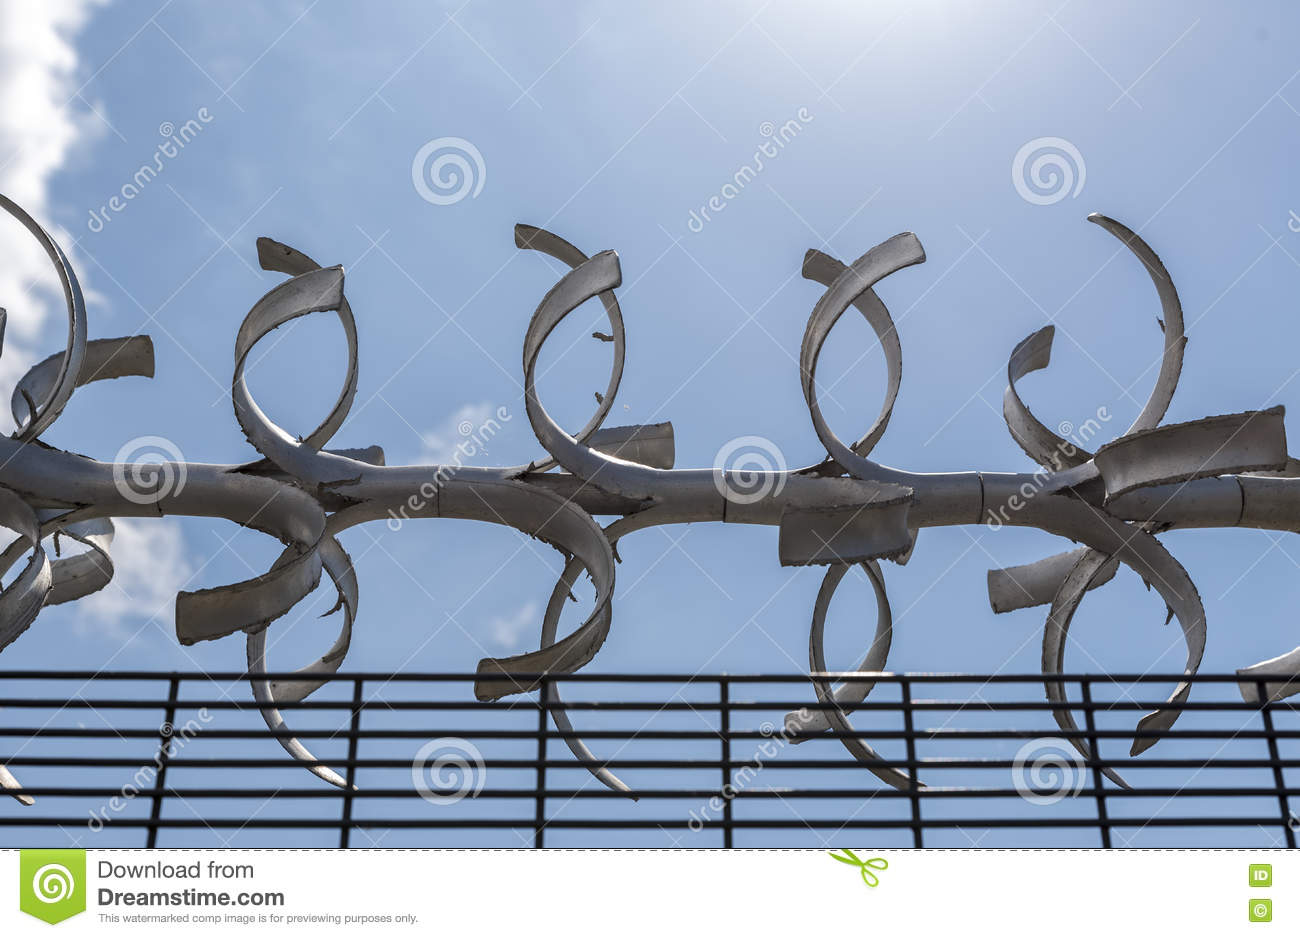 Large Barbed Wire Atop A Fence Stock Image - Image of danger, limit ...